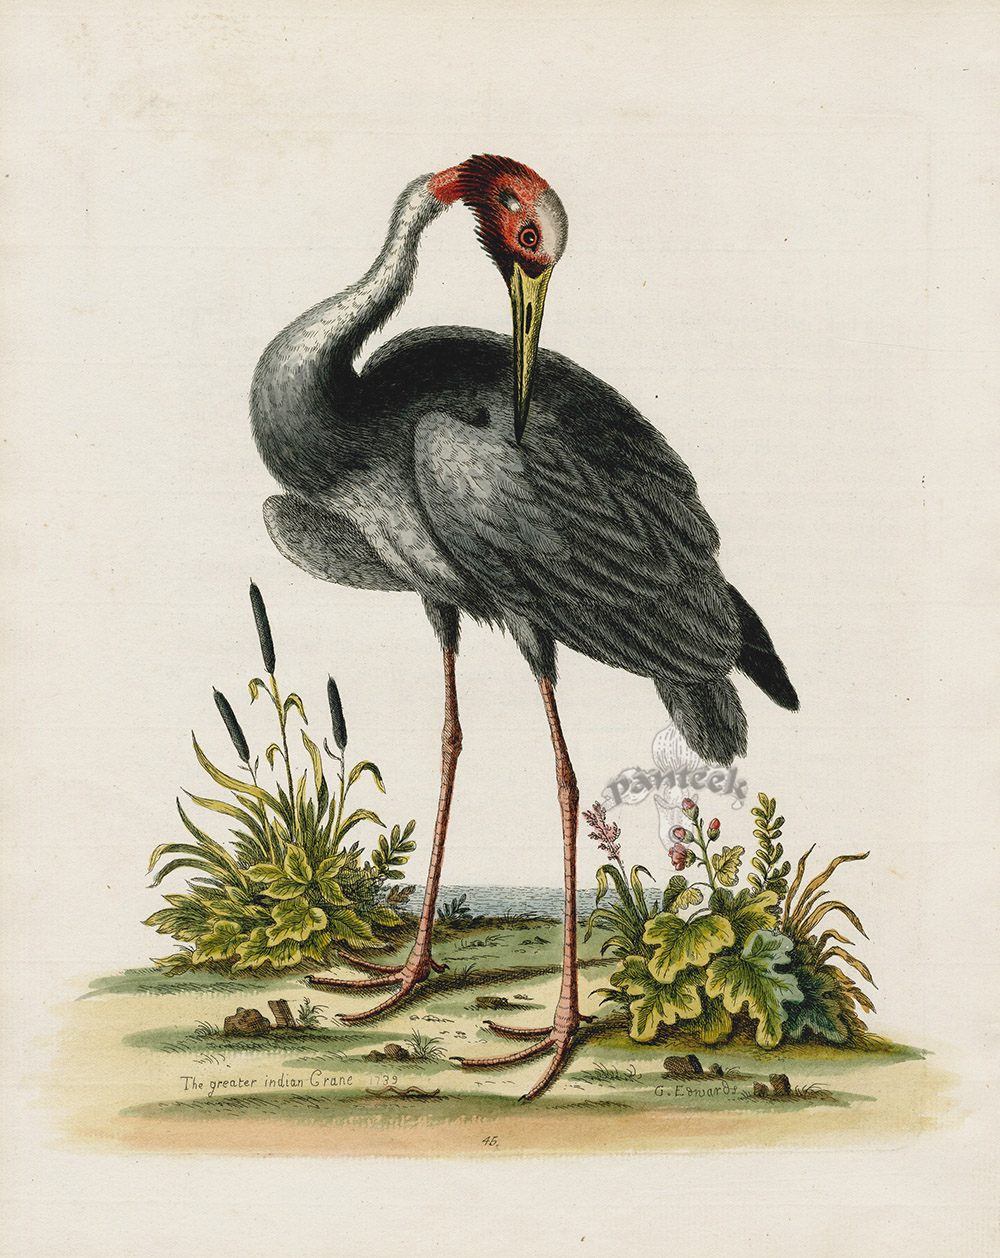 Greater Indian Crane from George Edwards Natural History